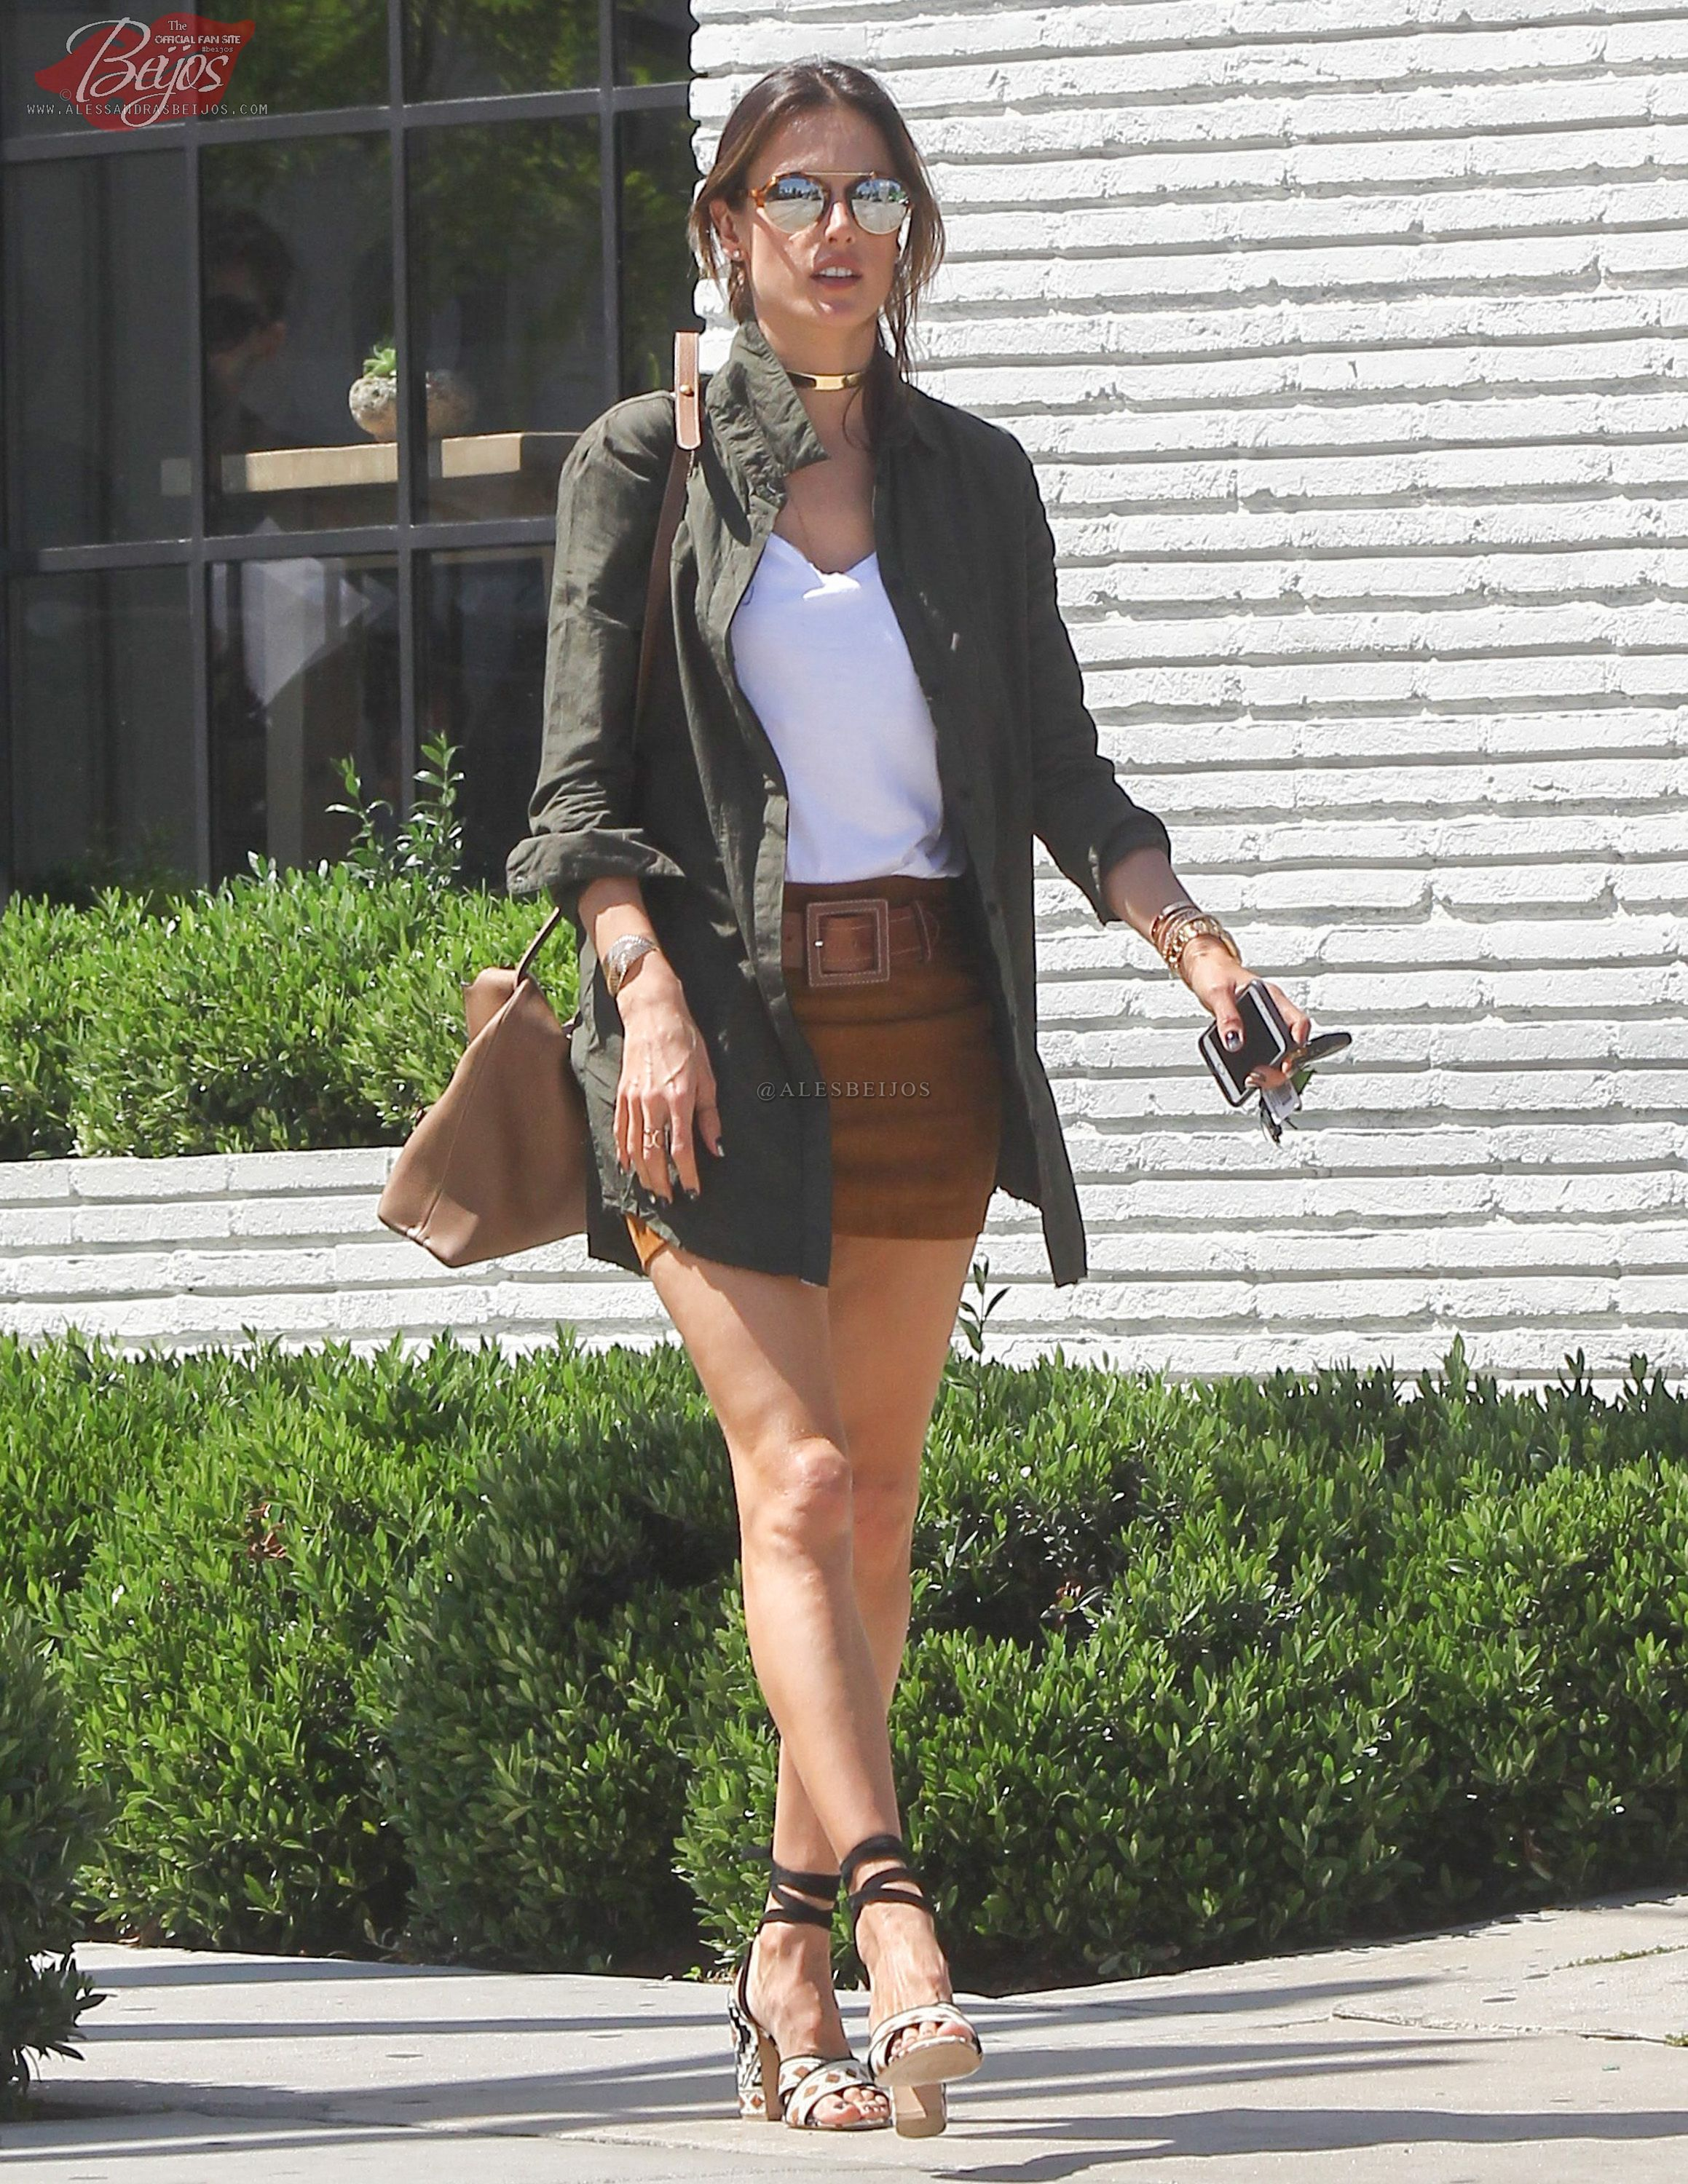 470b9407fa Alessandra Ambrosio was spotted out and about in Los Angeles ...